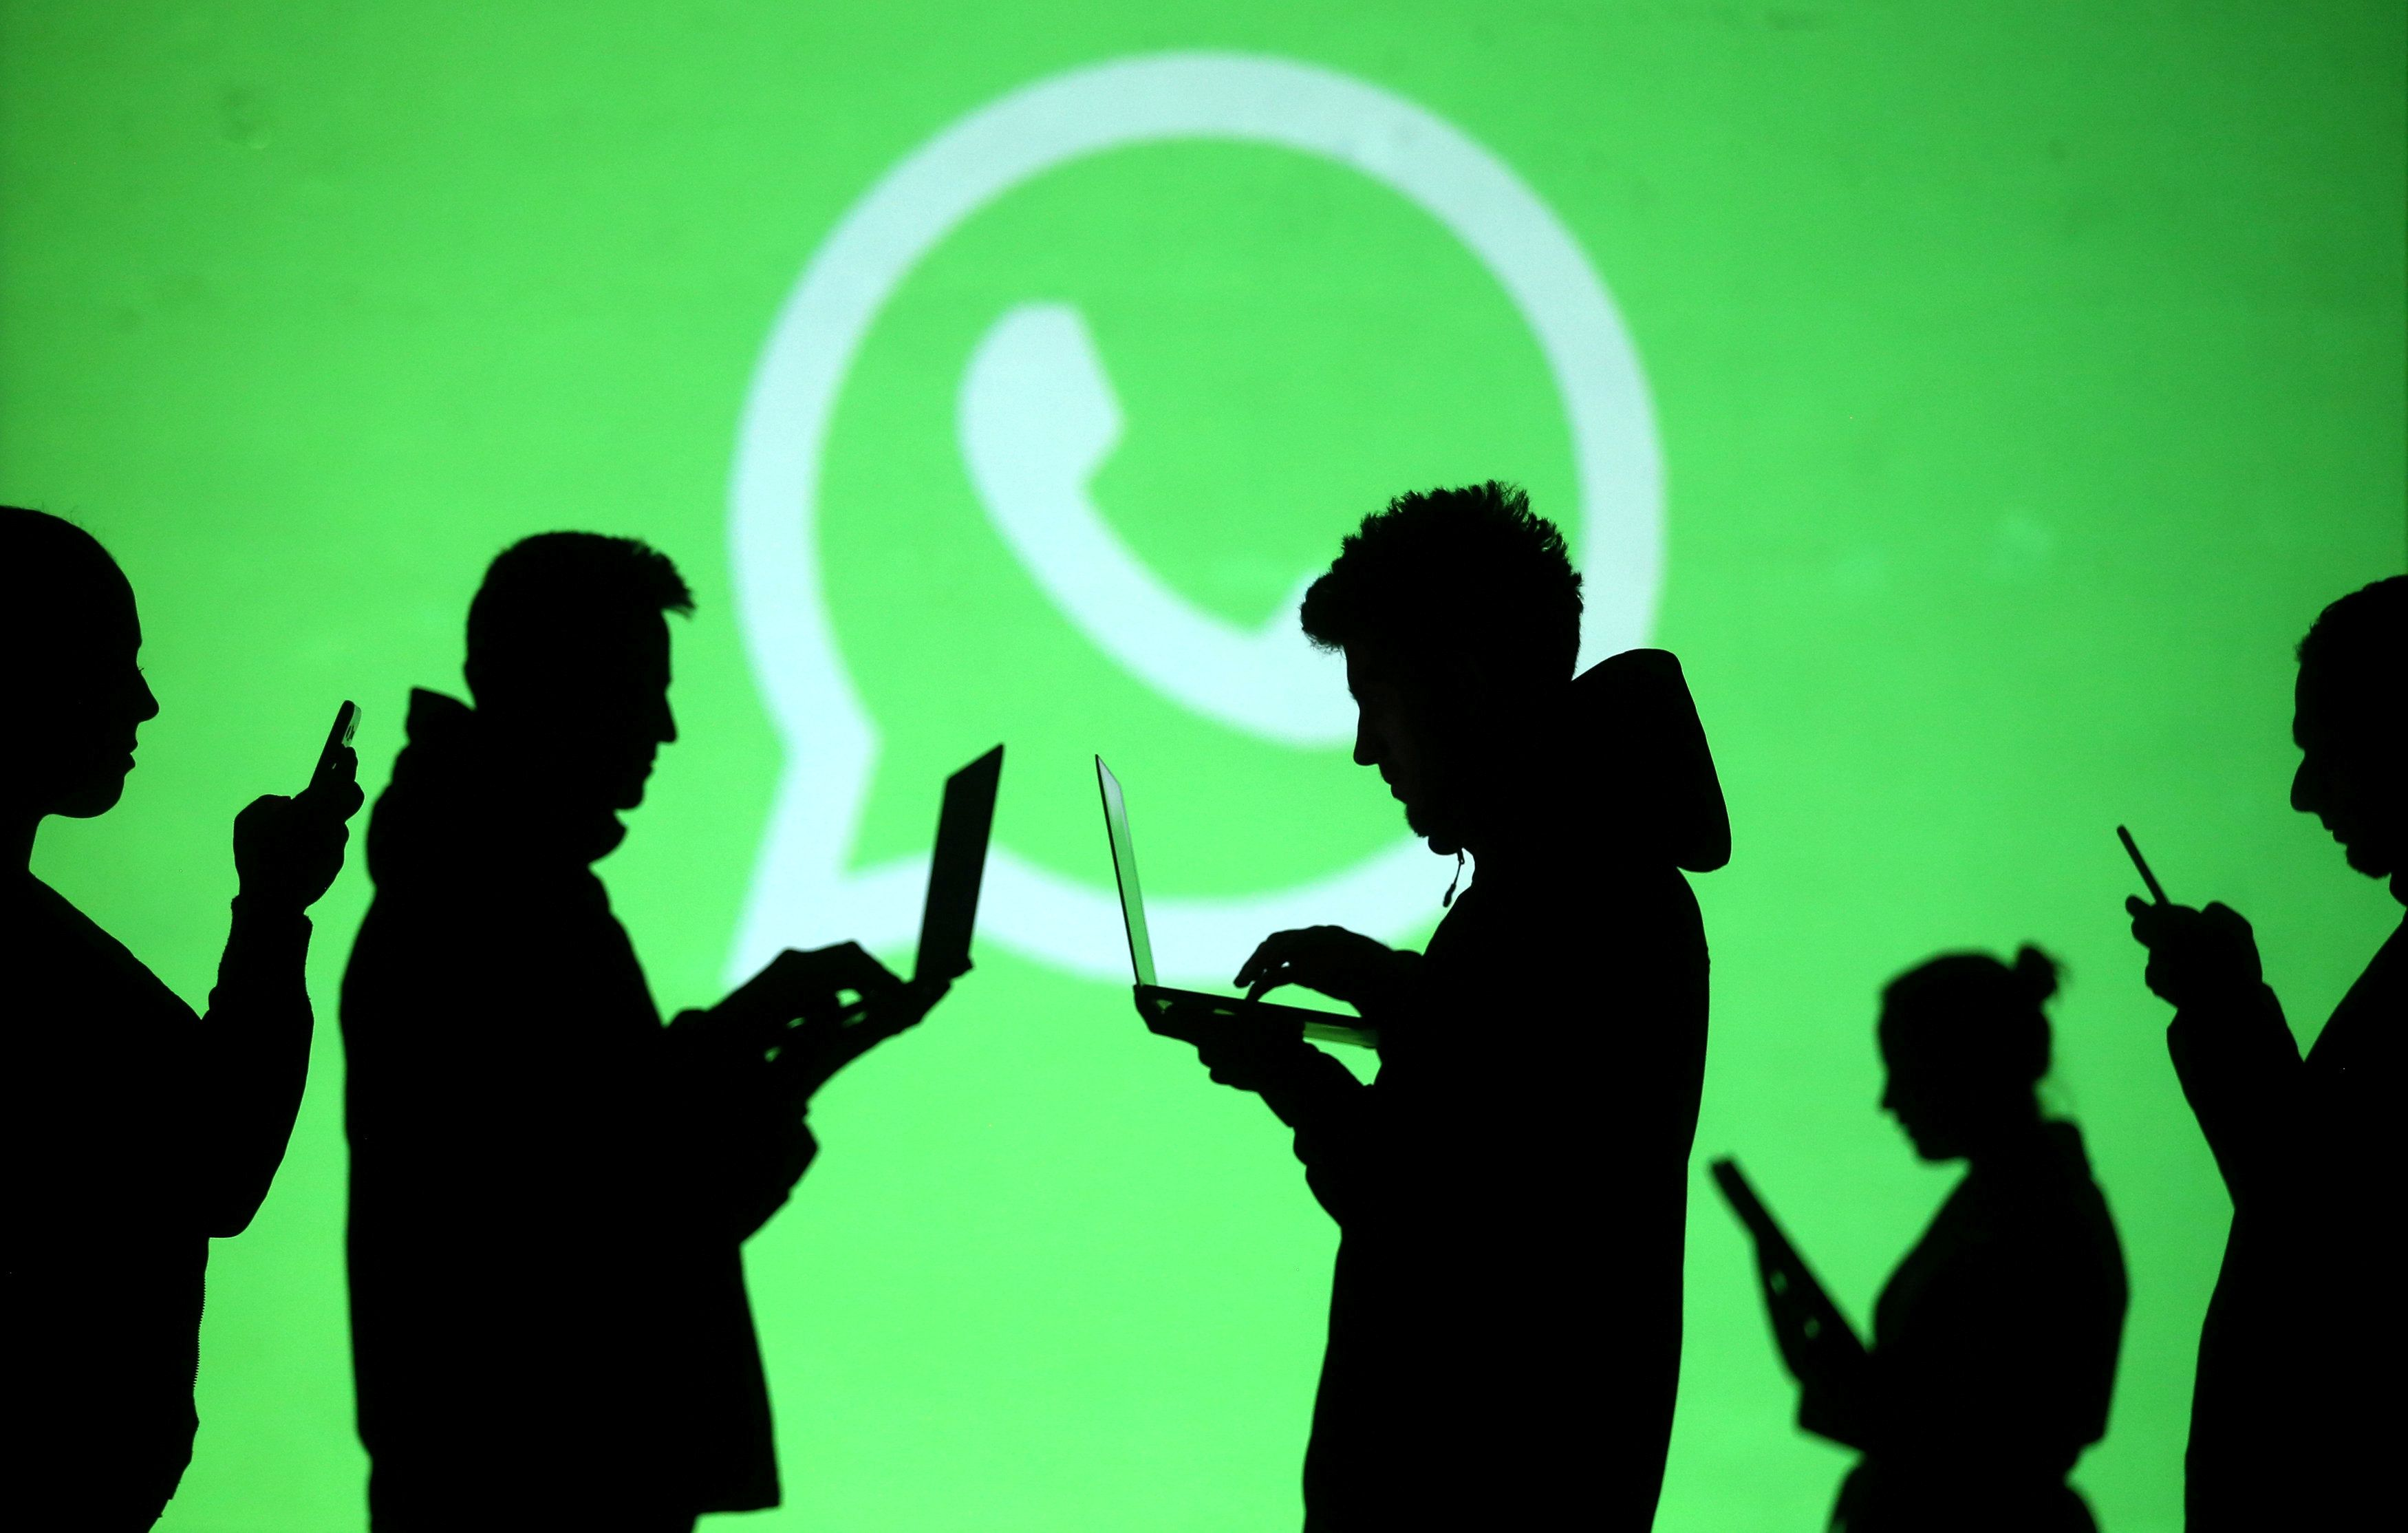 REFILE - CLARIFYING CAPTION Silhouettes of laptop and mobile device users are seen next to a screen projection of Whatsapp logo in this picture illustration taken March 28, 2018. REUTERS/Dado Ruvic/Illustration